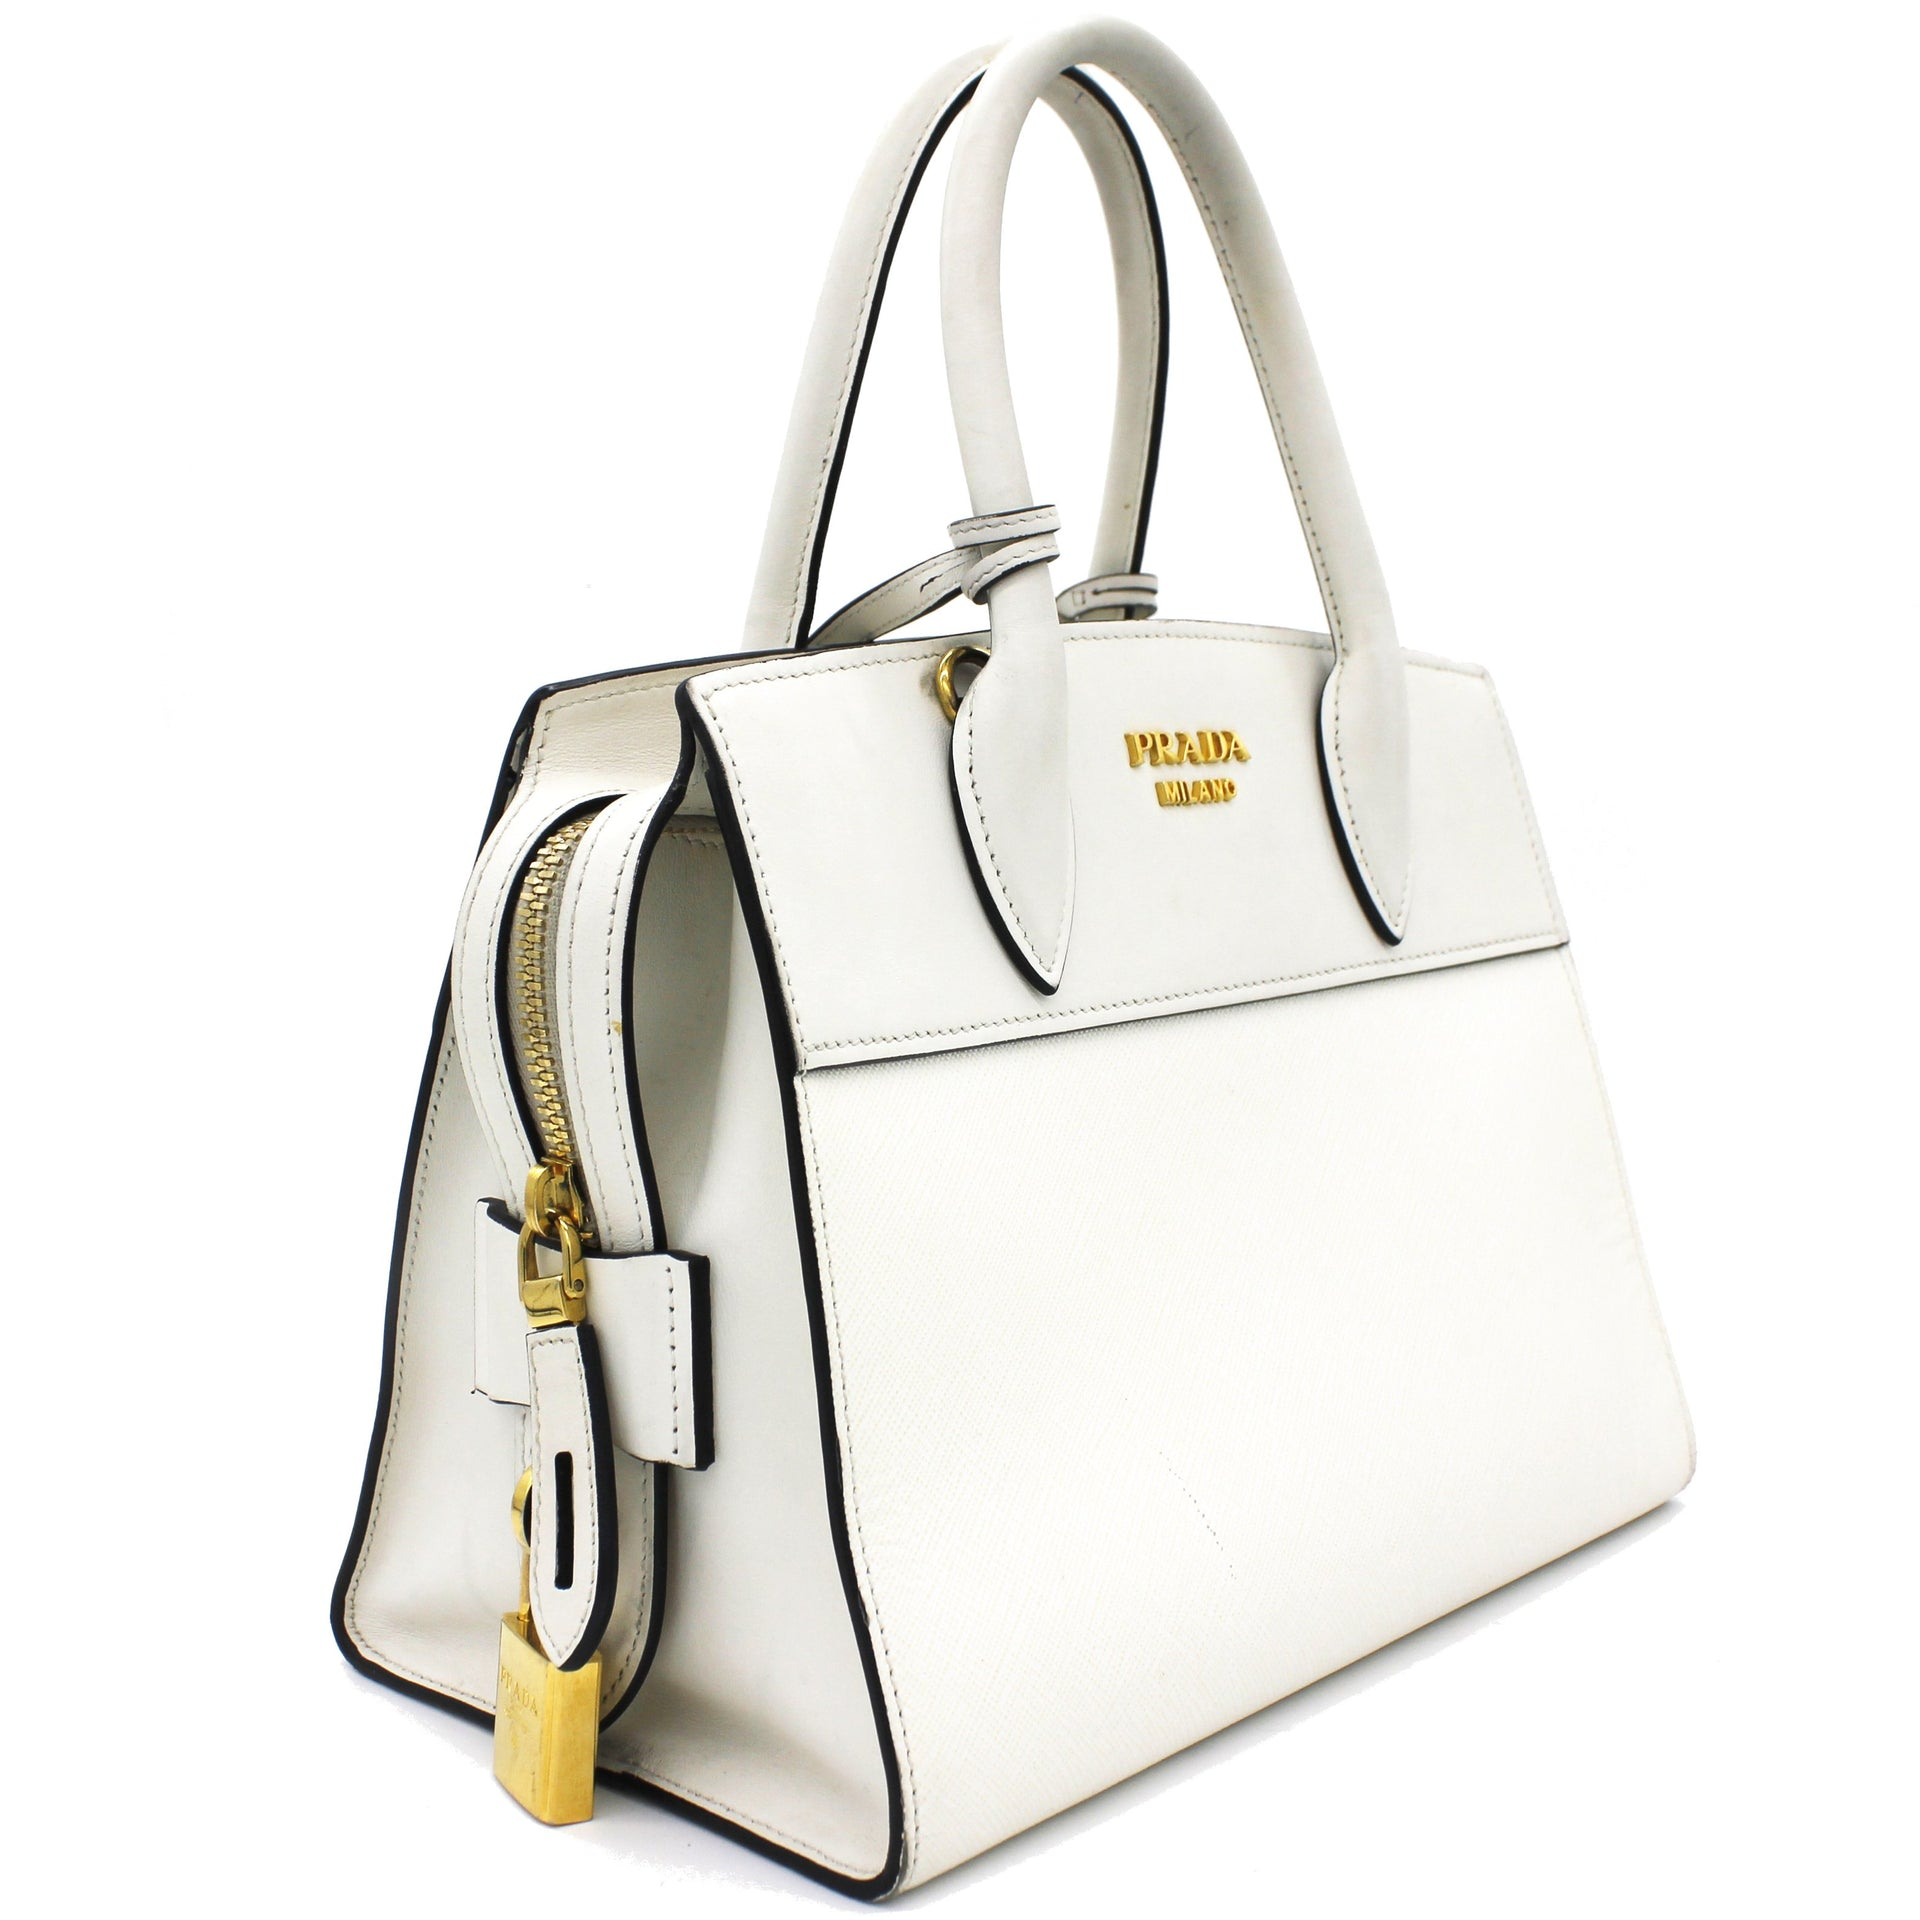 Saffiano City Calf Small Esplanade Tote White